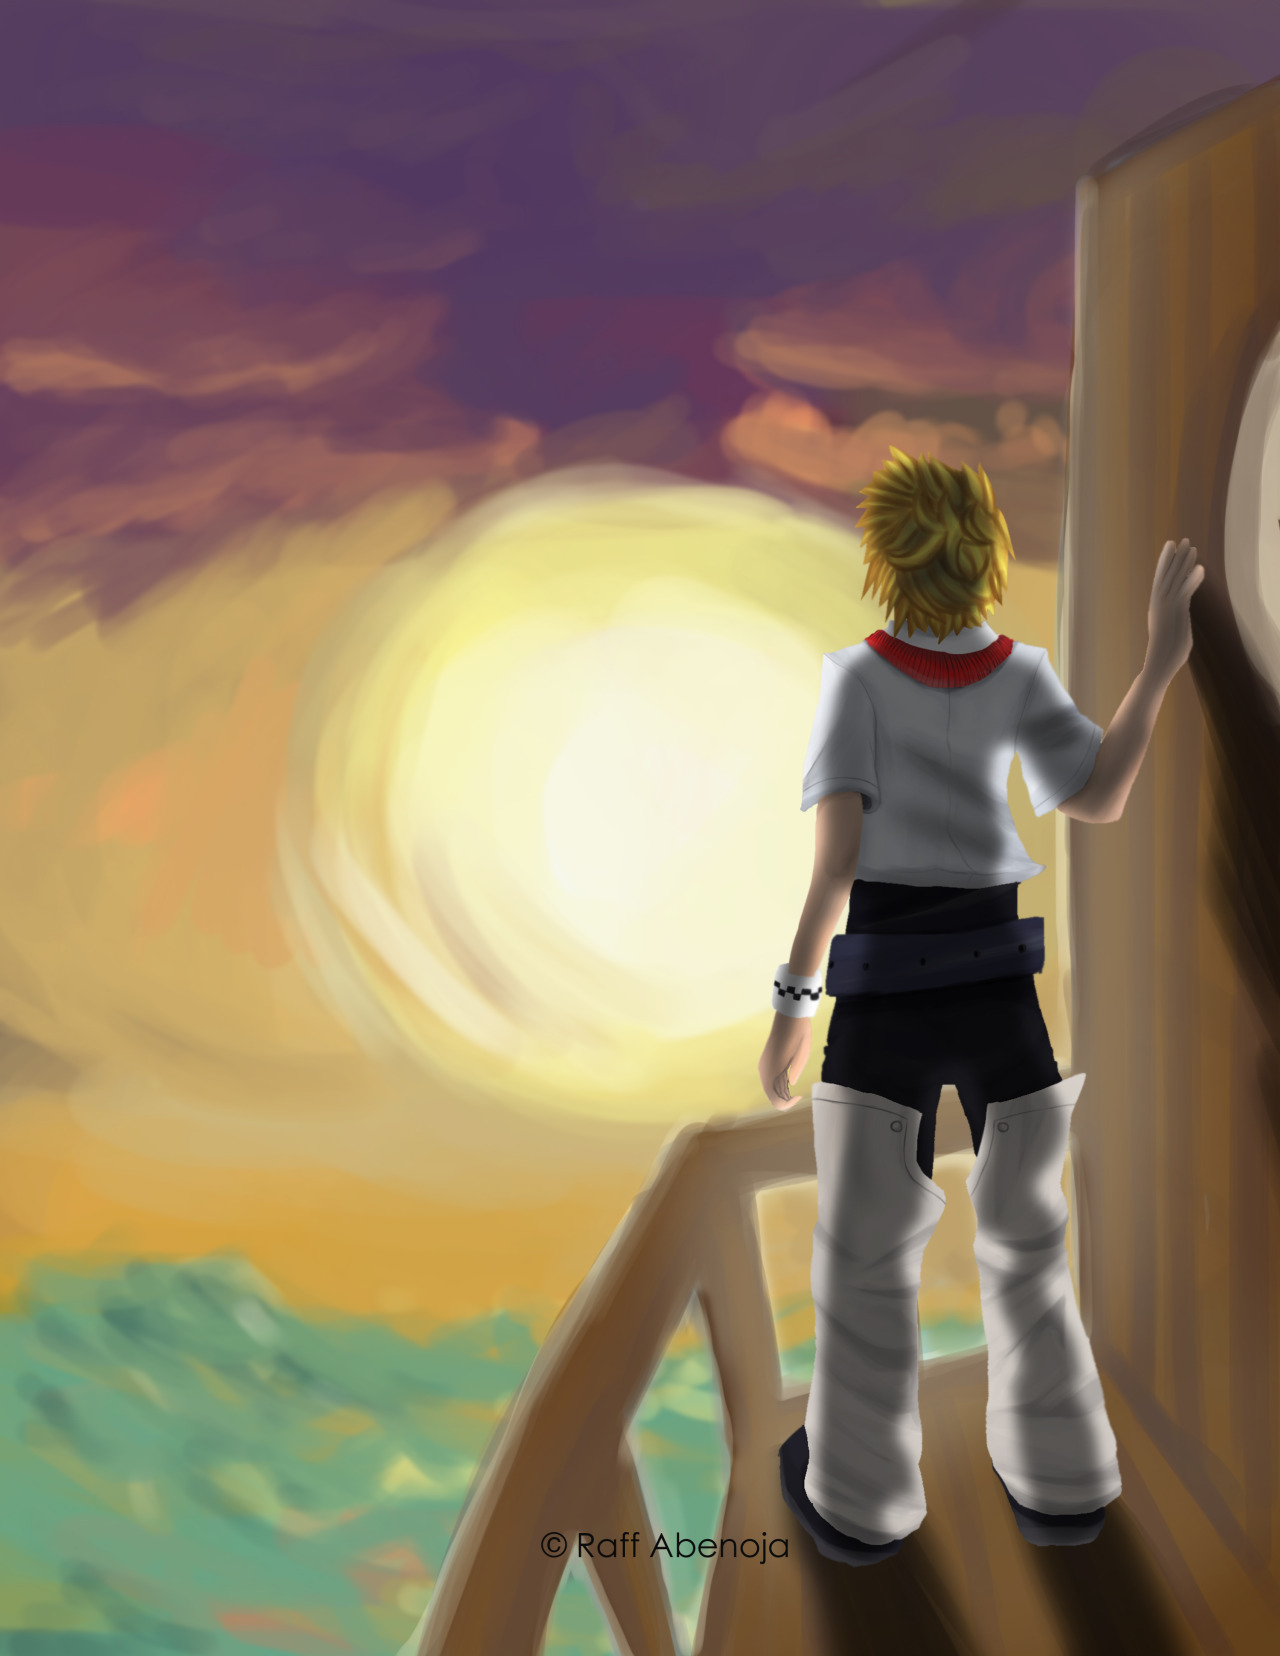 """Sometimes I don't even know myself anymore…""-Roxas, Kingdom Hearts seriesDrawn with AdobePhotoshopCS5Roxas and Kindom Hearts owned by Square Enix"